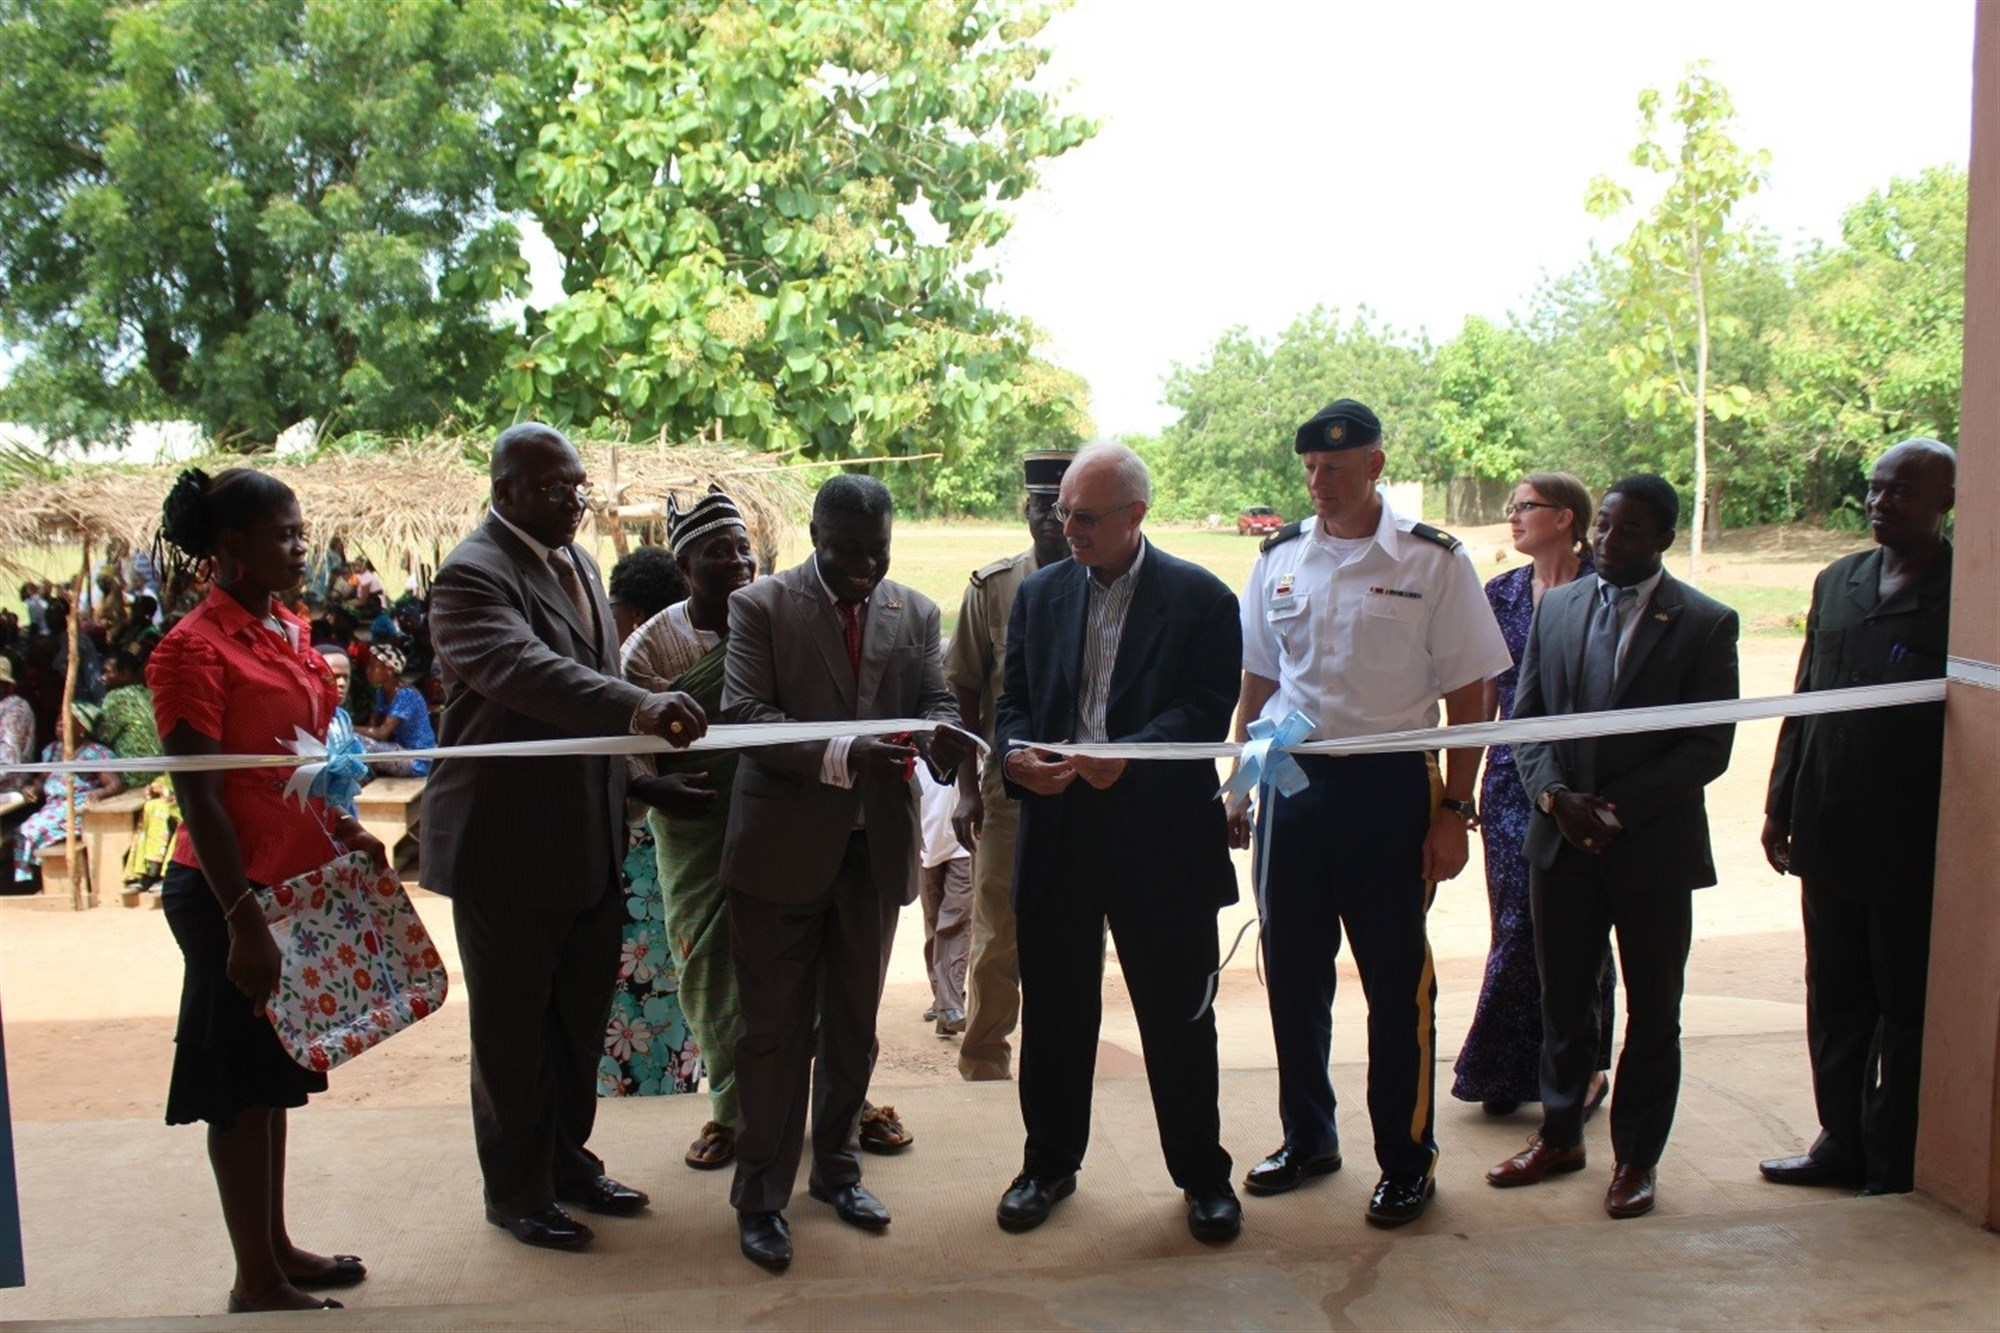 Ambassador Robert E. Whitehead marks the opening of a primary school during a ribbon cutting ceremony in Atomé, Togo, May 28, 2015. U.S. Africa Command funded the construction through the Humanitarian and Civic Assistance Program. Photo by Ben Simyeli, U. S. Embassy Lomé.